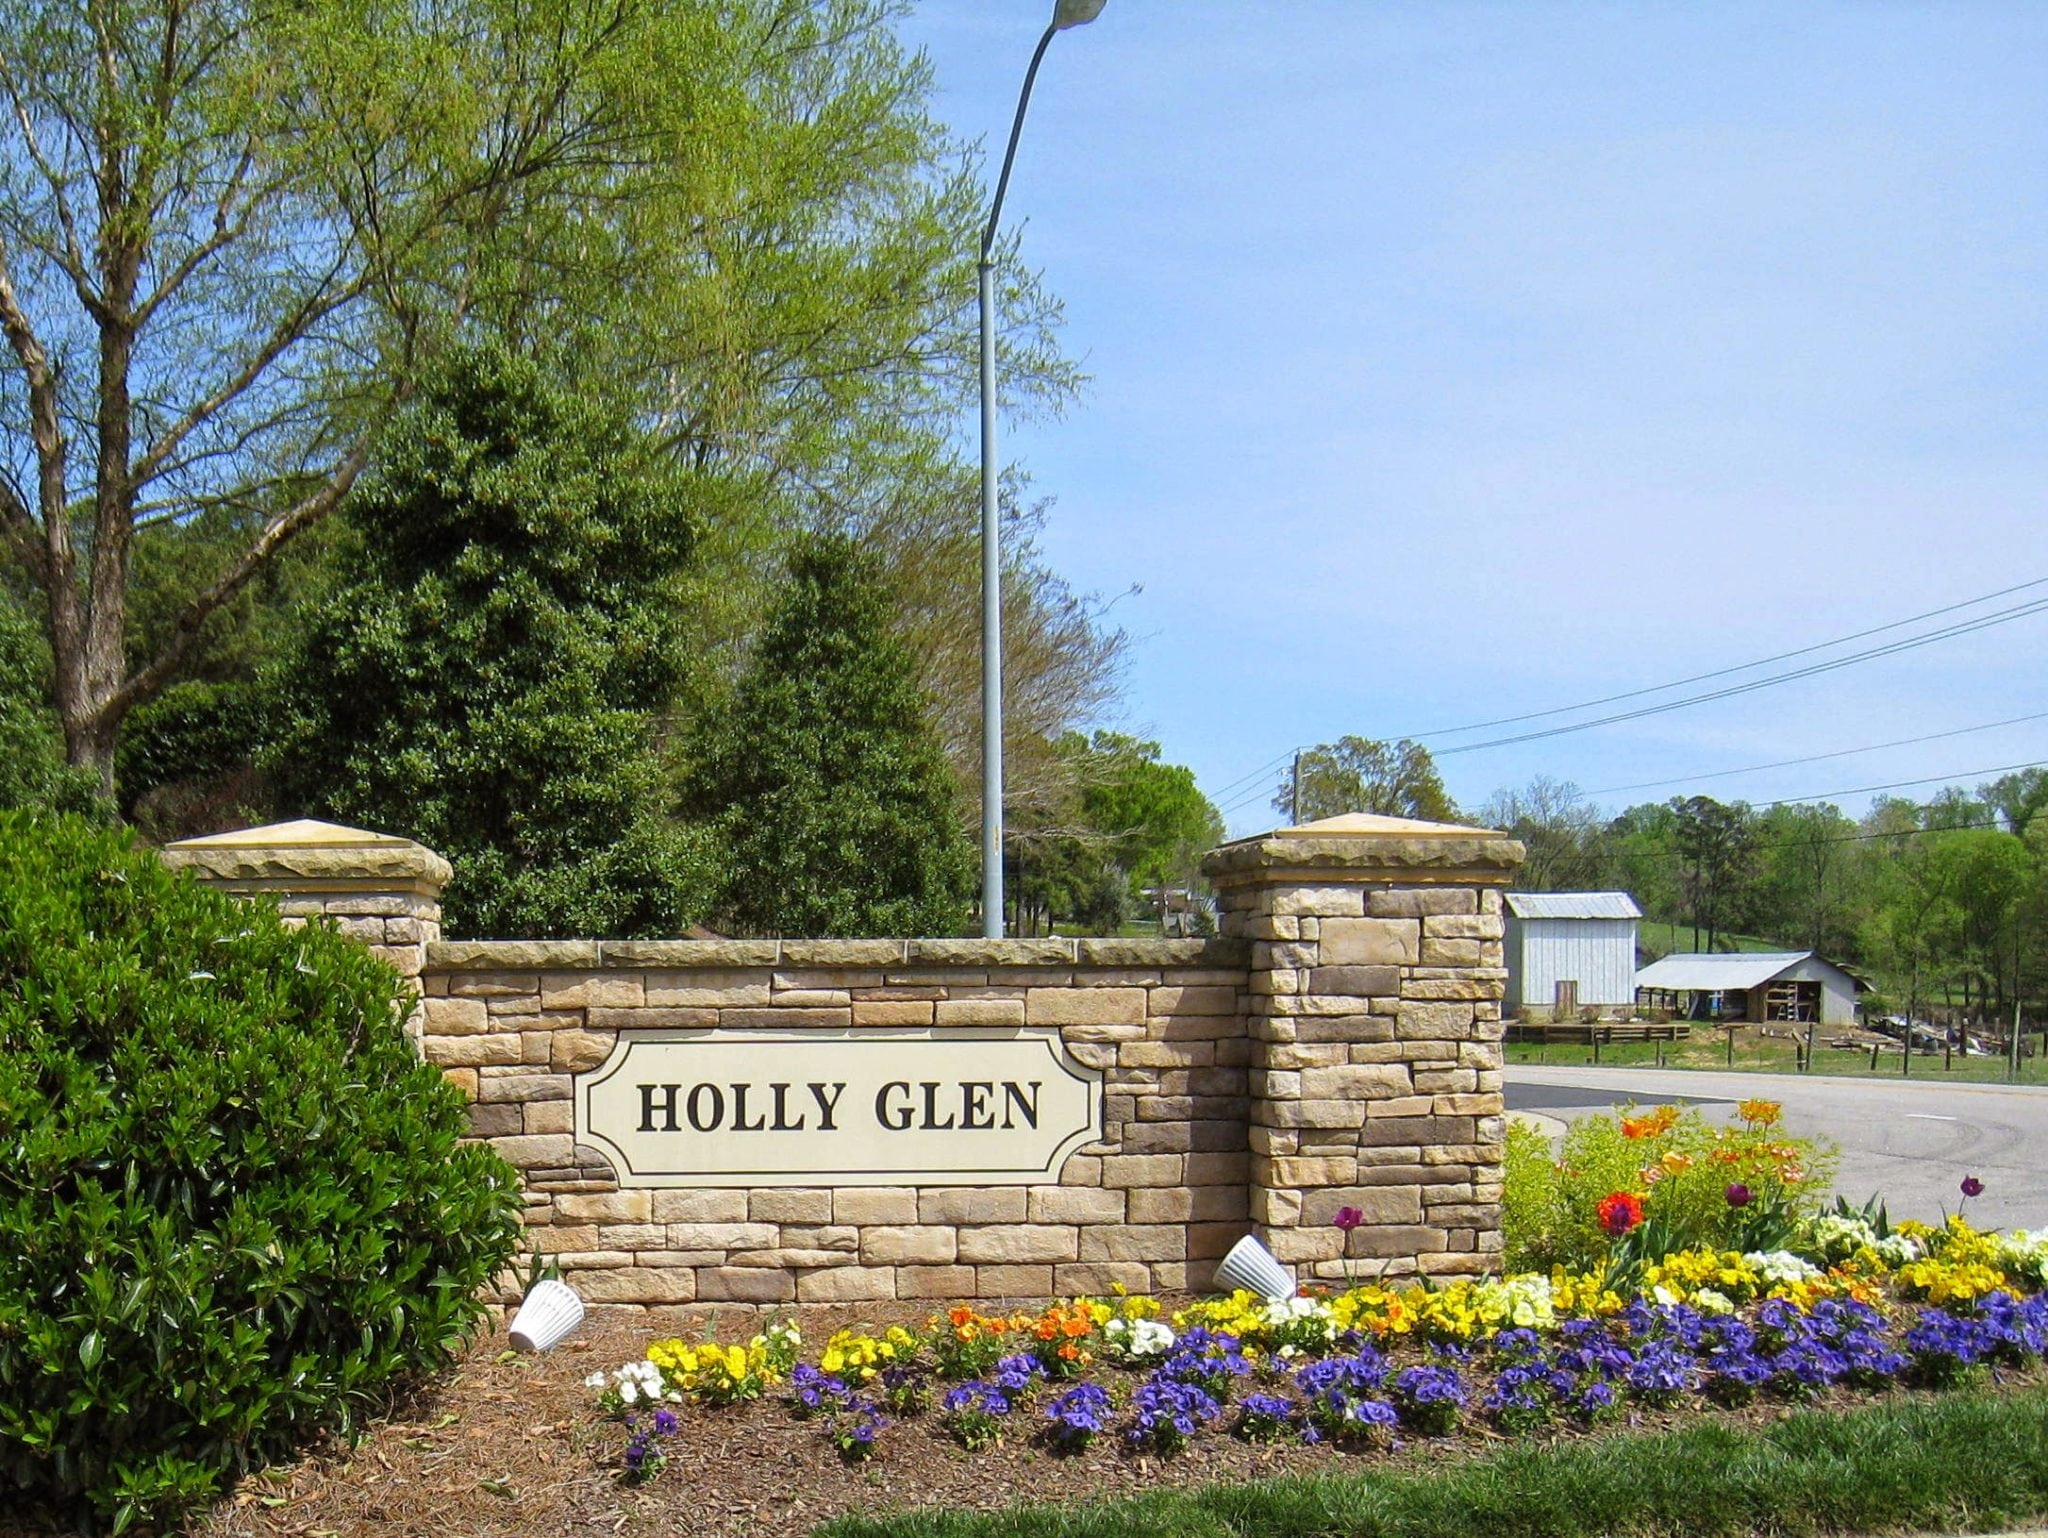 Holly Glen in Holly Springs